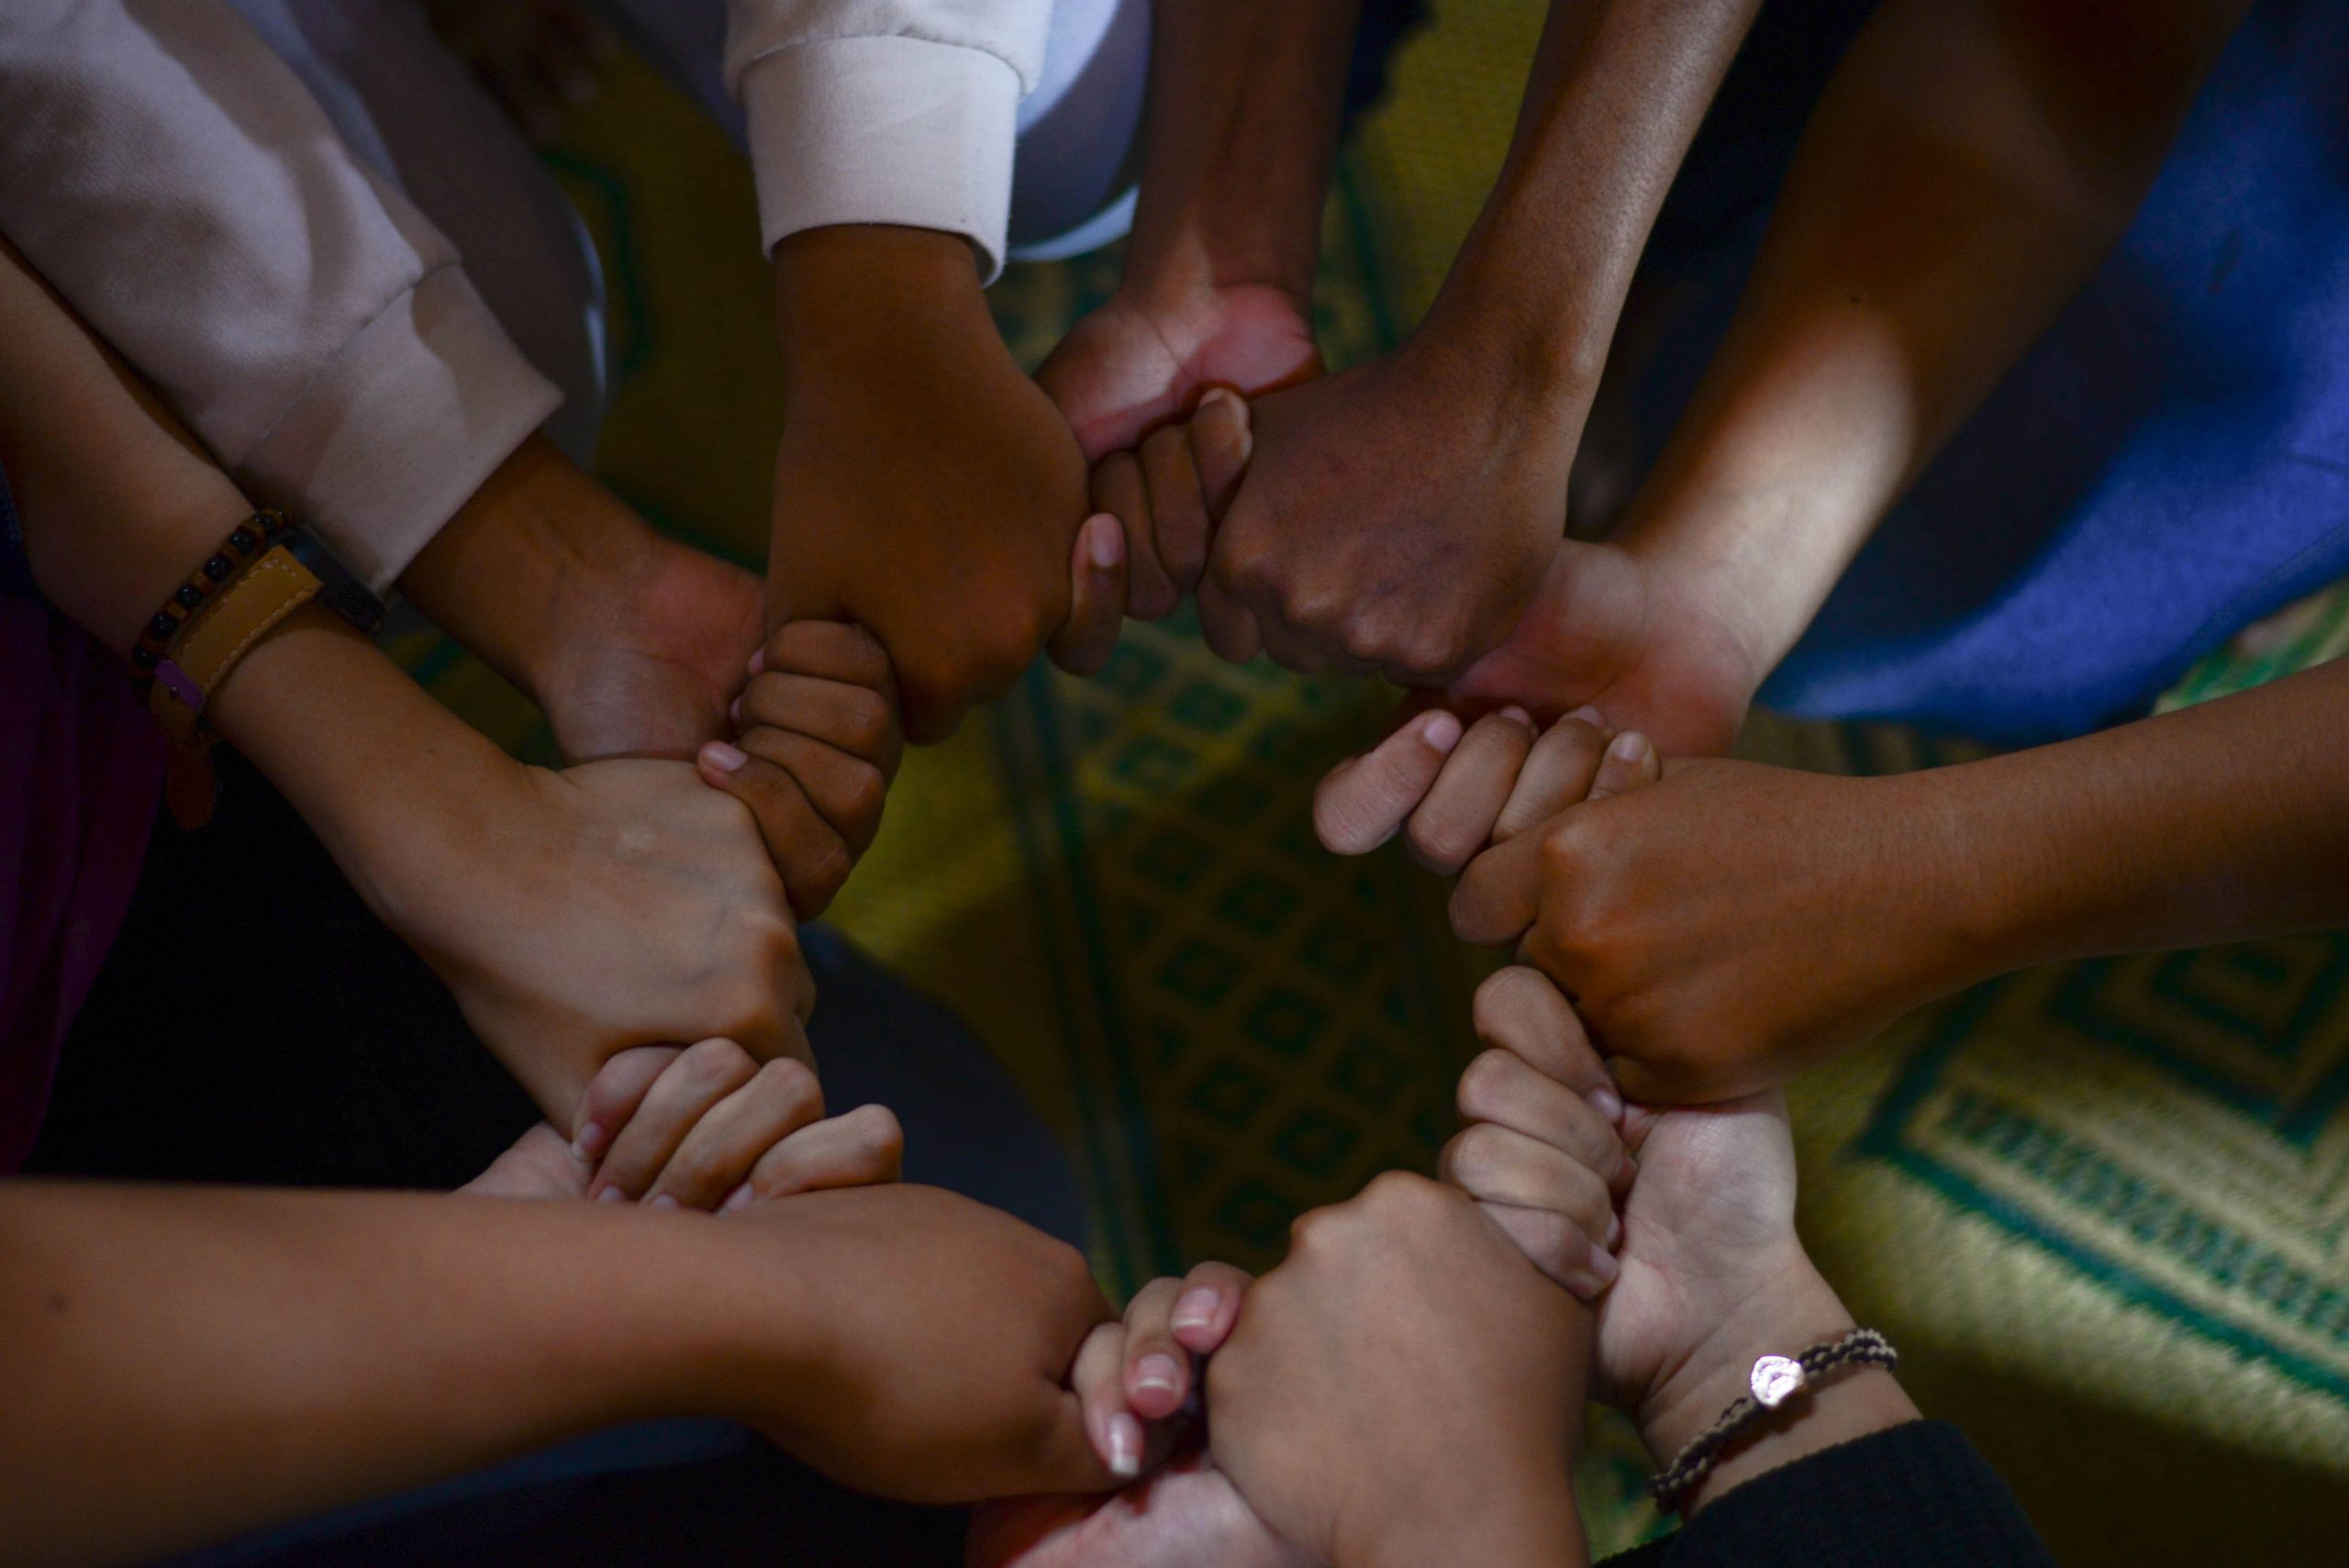 group of different colored hands holding one another in harmony